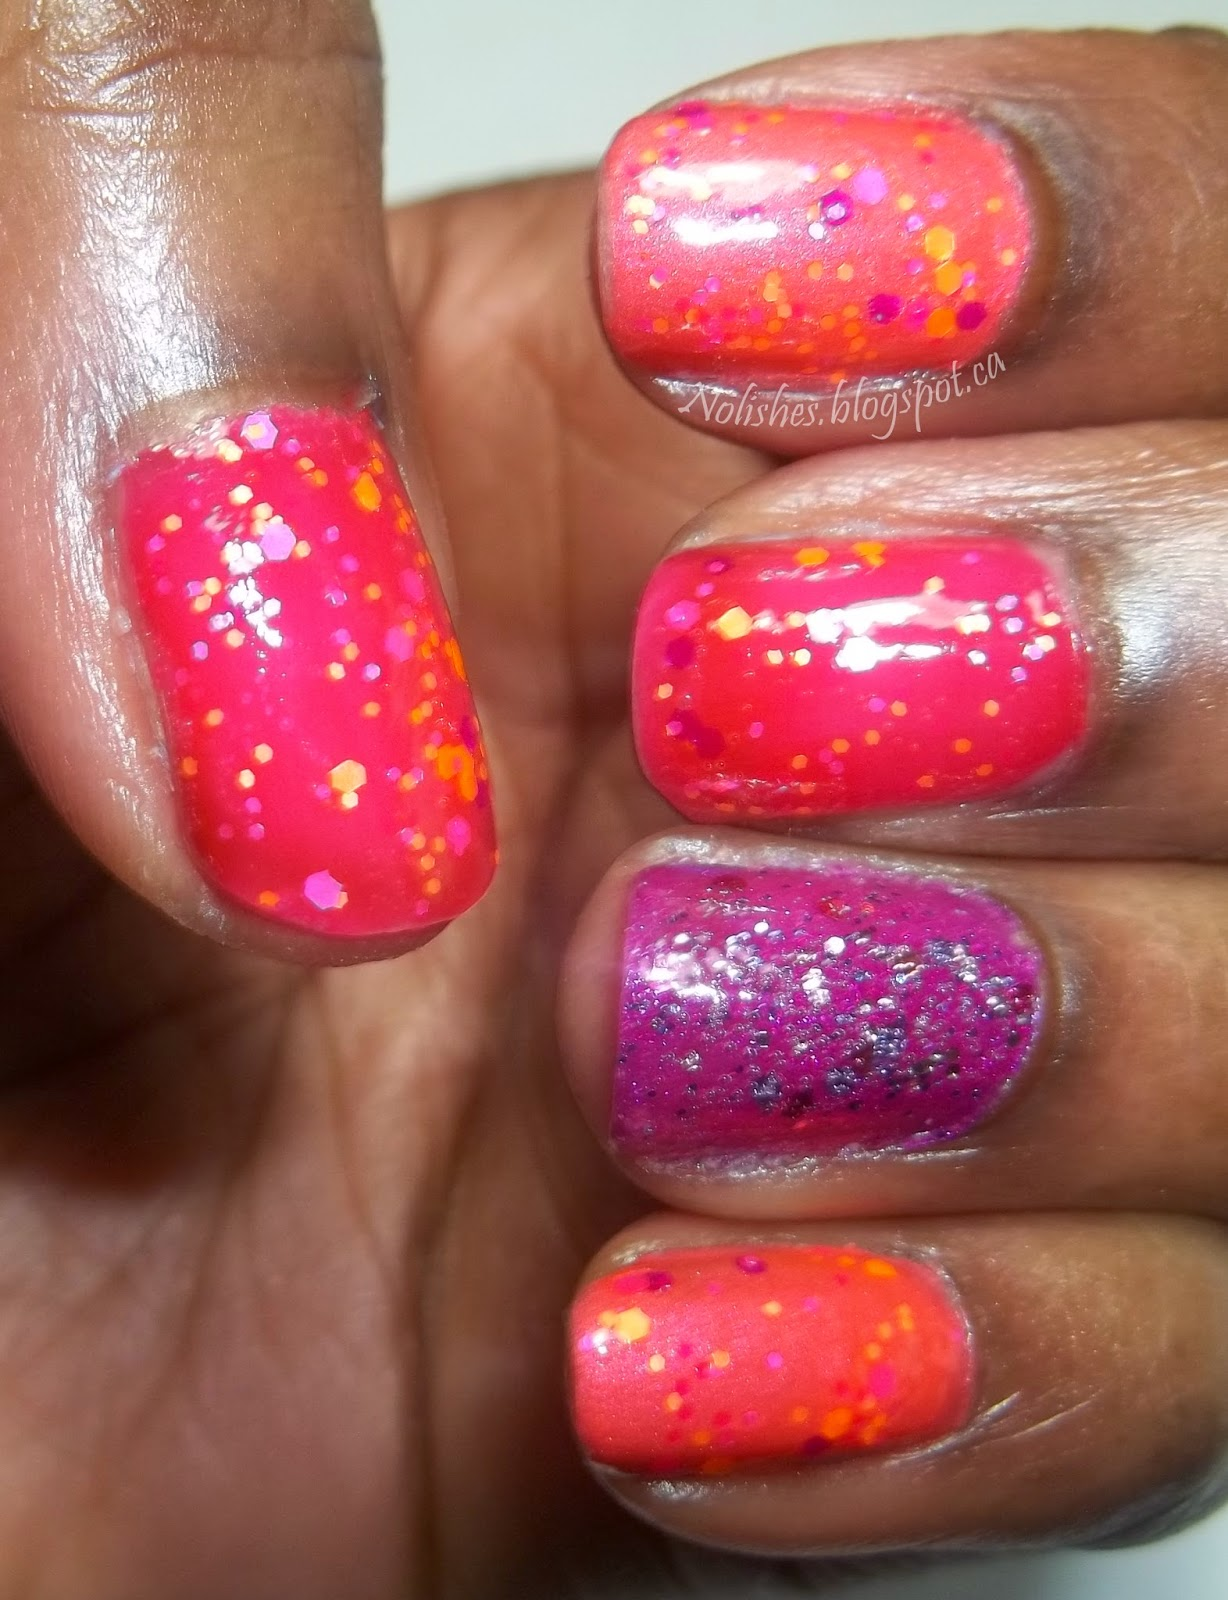 Skittles manicure with purple, fuchsia, and coral polishes covered in a purple, fuchsia,and orange glitter. Accent nail is covered with a traditional metallic glitter with lilac, pink, and plum tones.